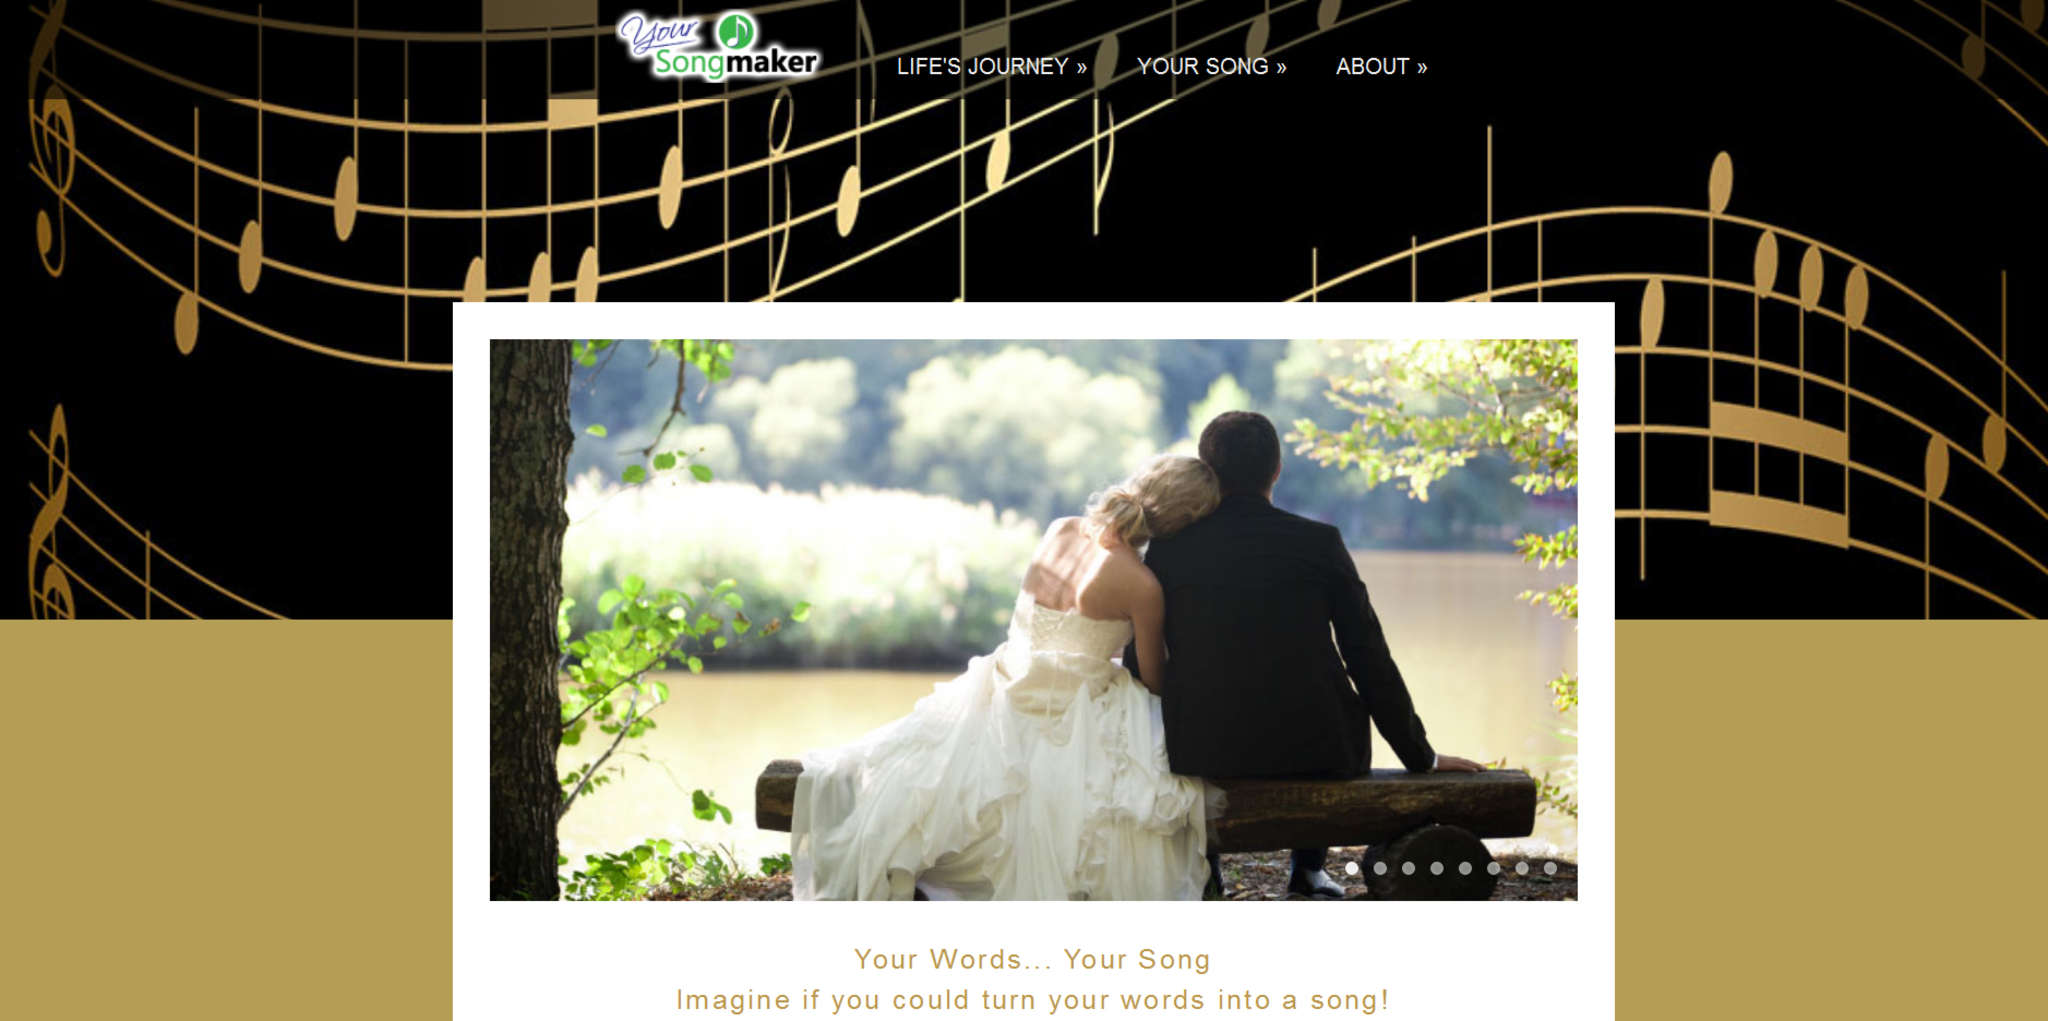 Website of Songmaker Productions. The company has a pool of 45 composers